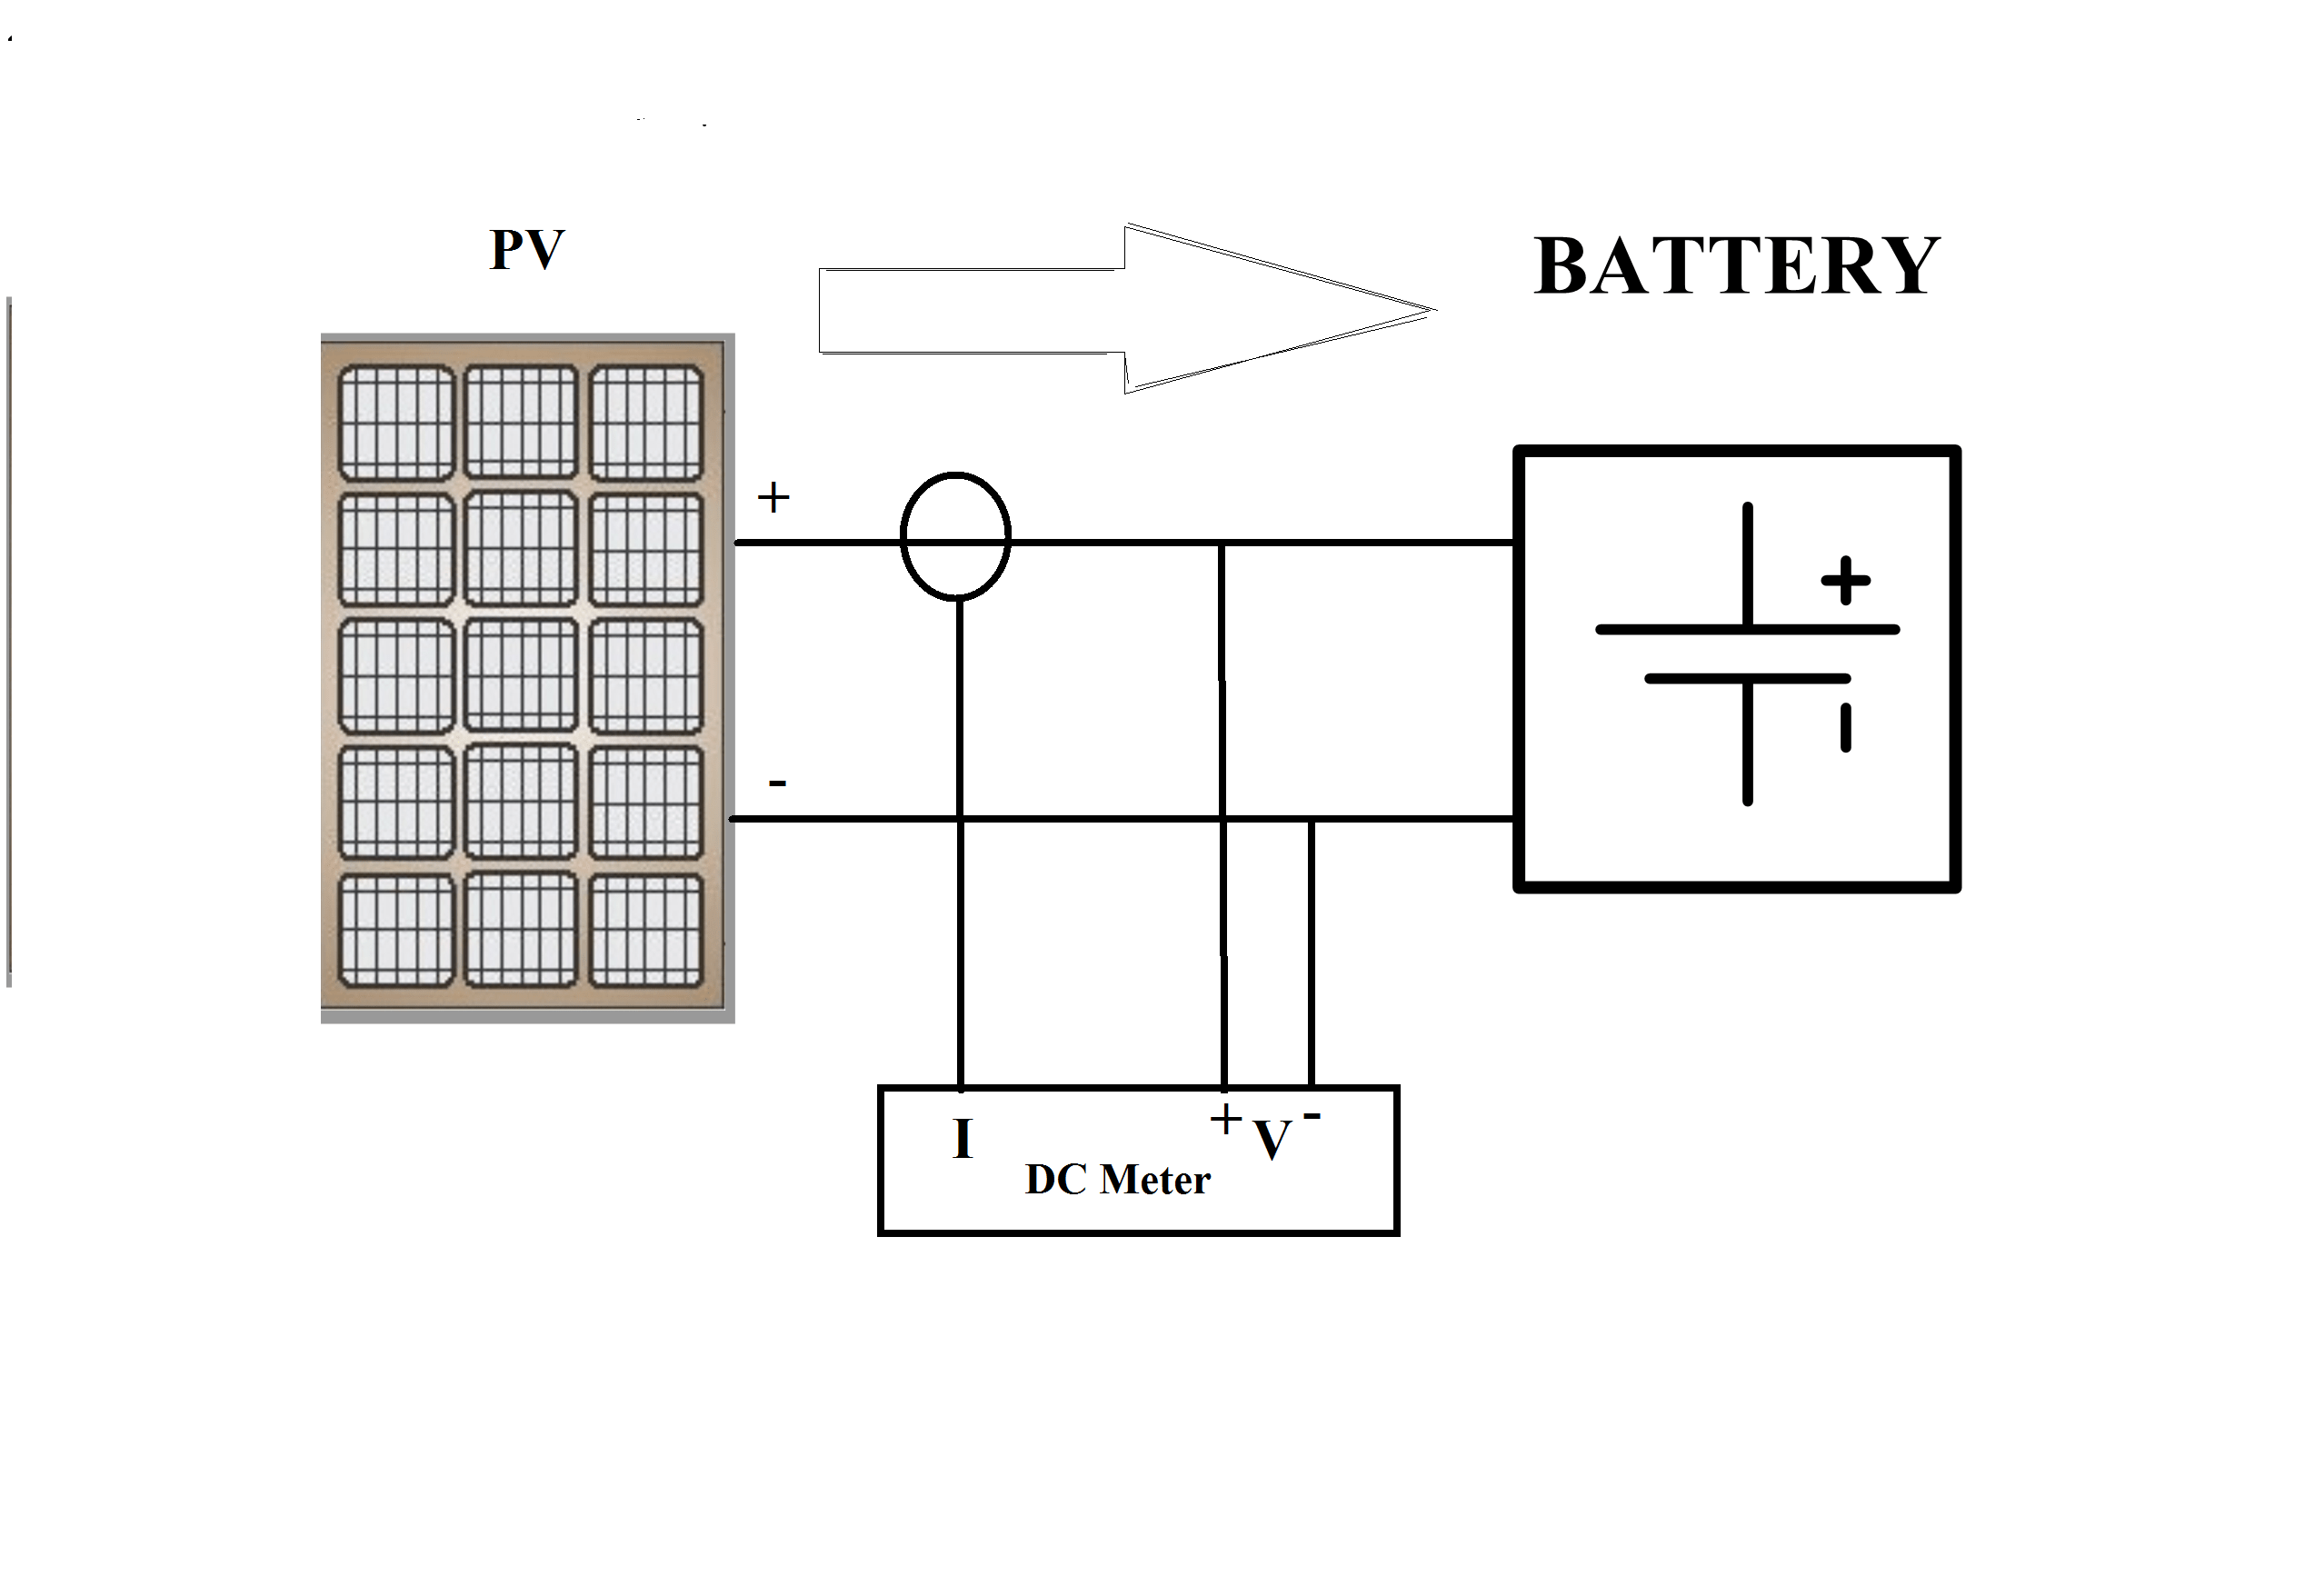 Dc Meter For Pv Output Measuring And Data Logging